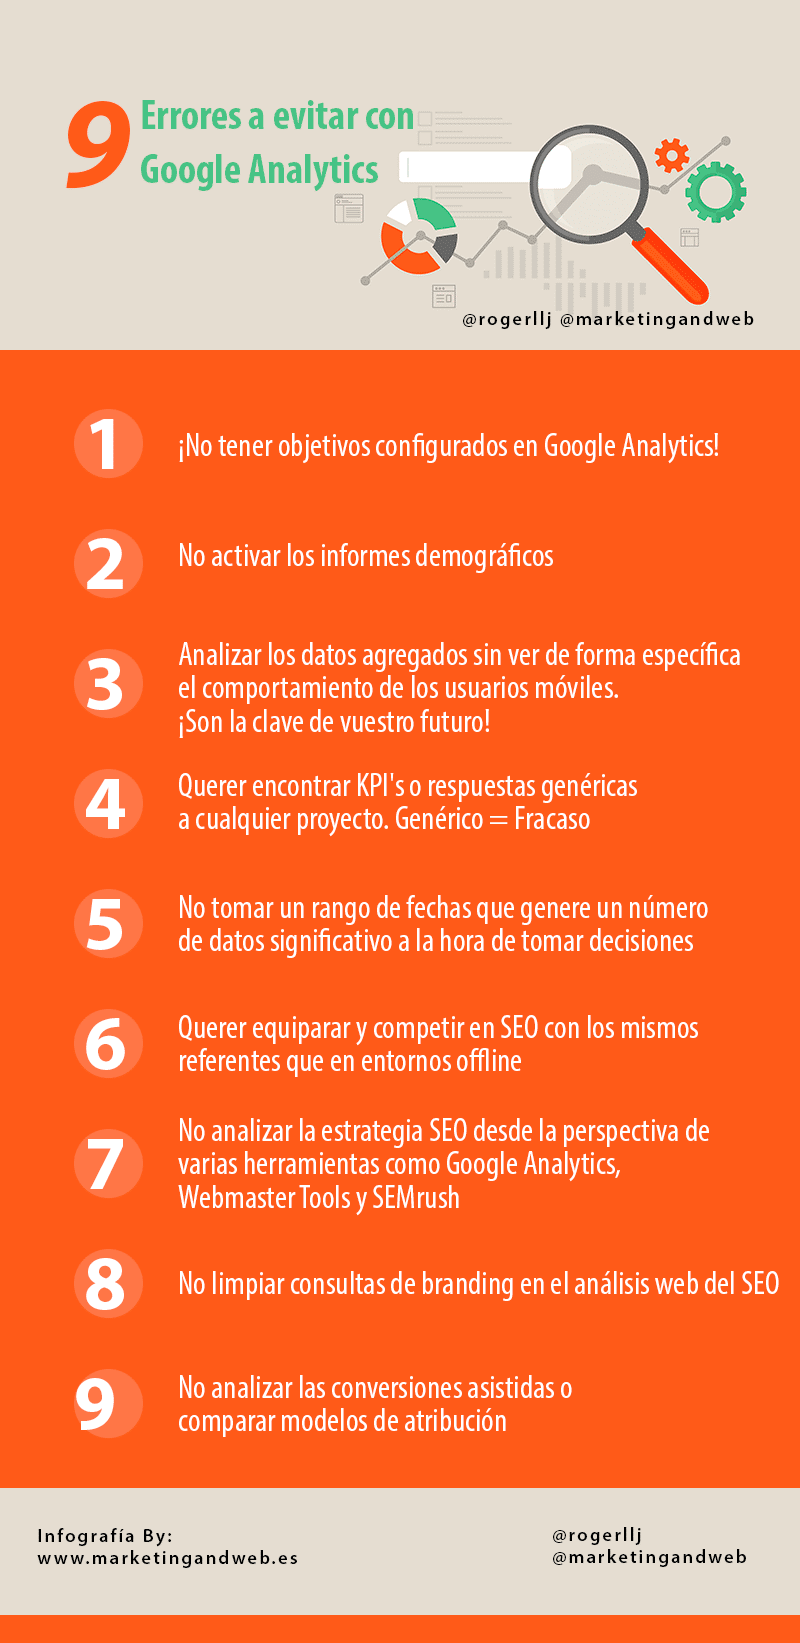 errores google analytics